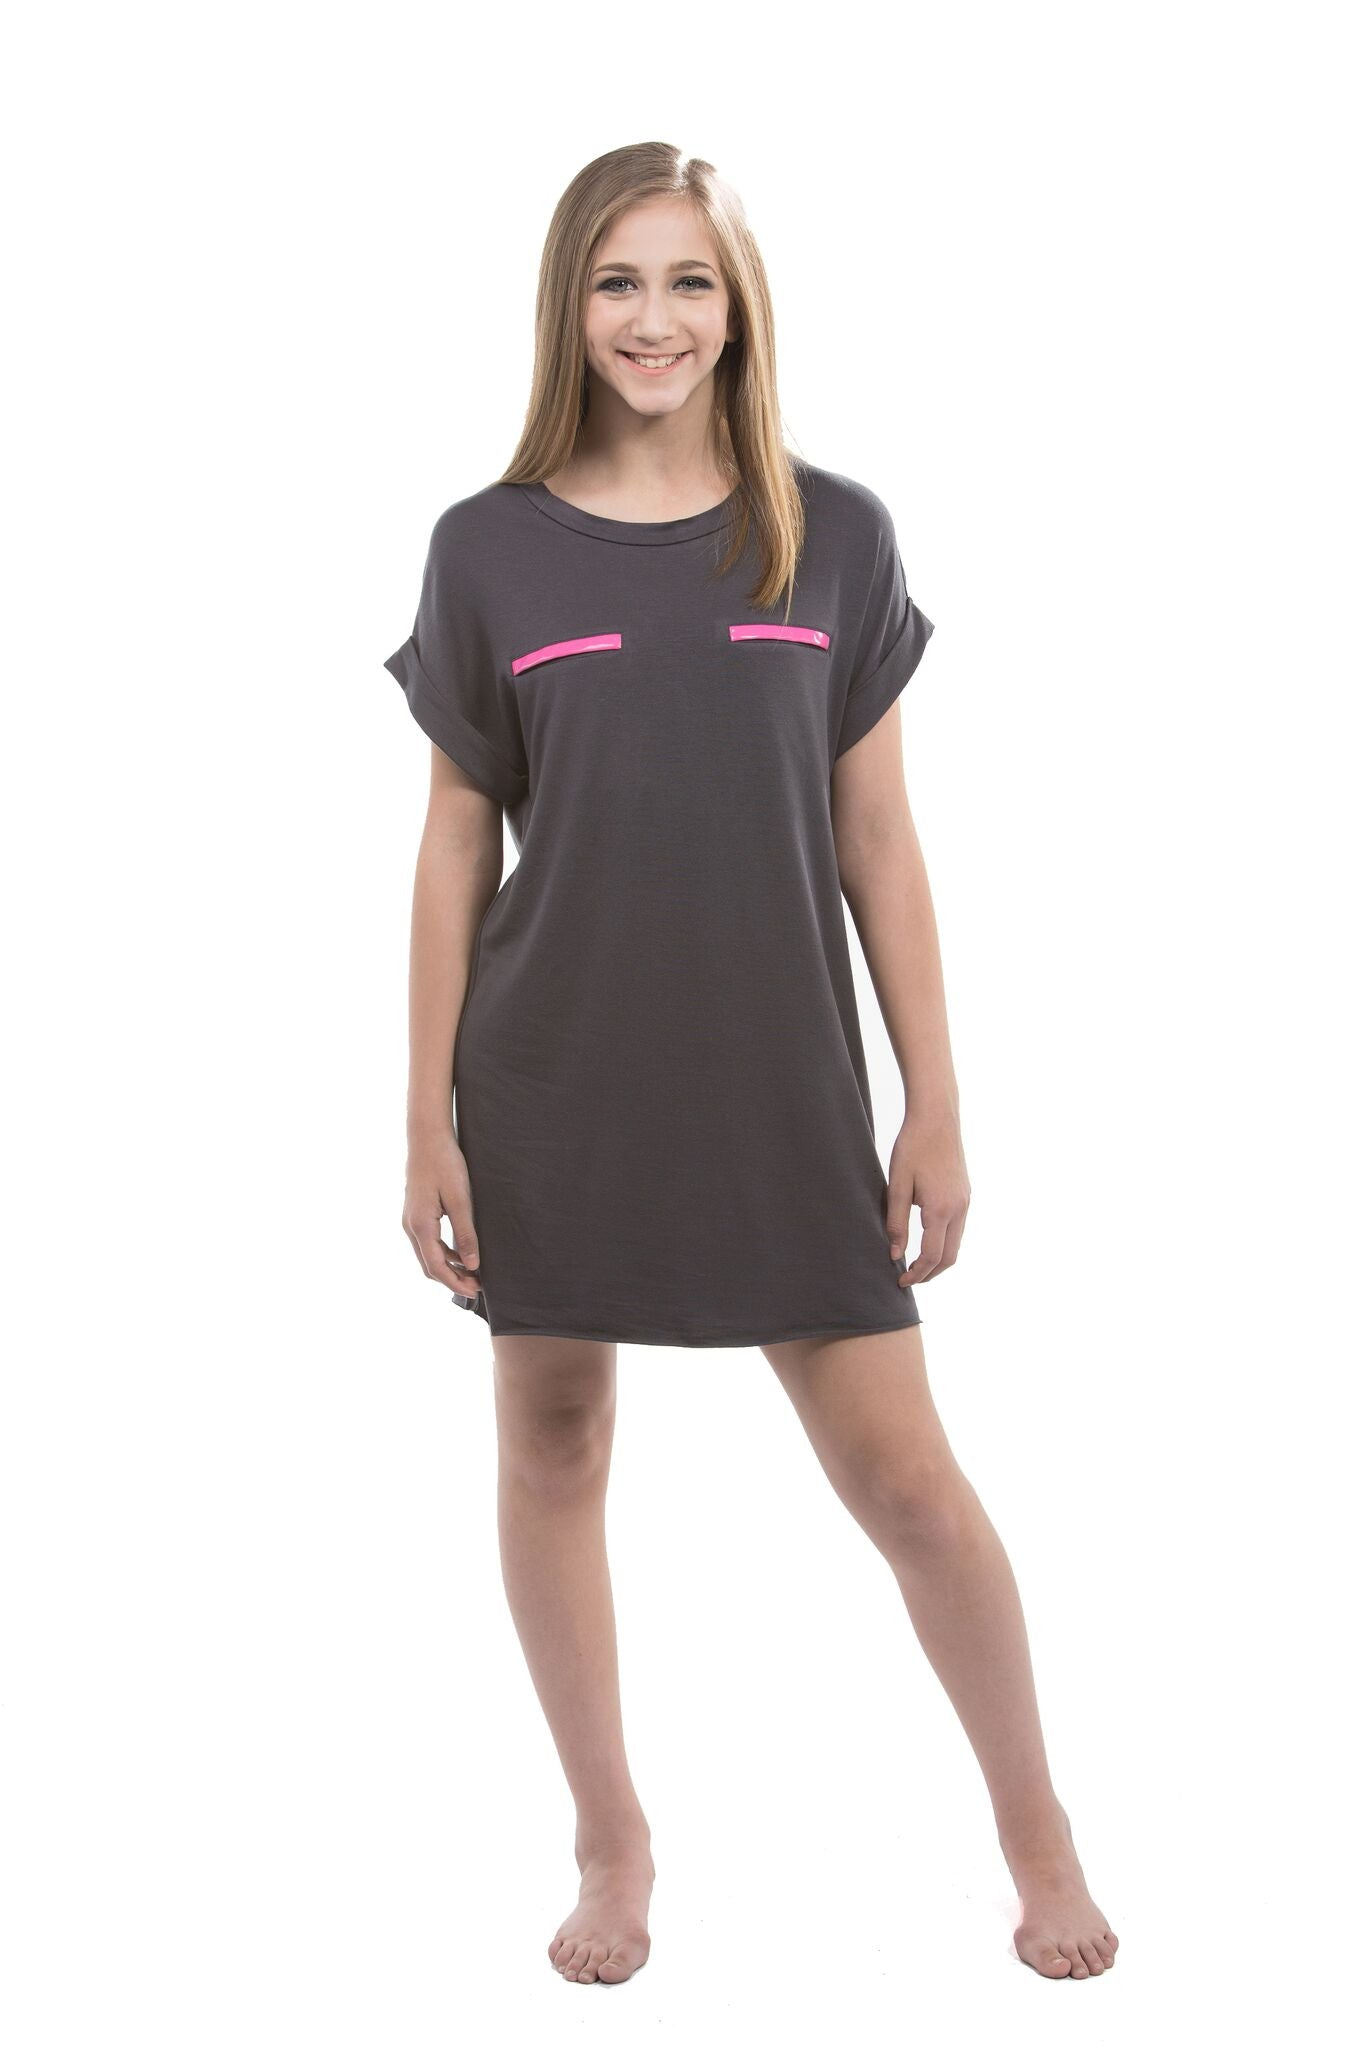 C2 dance wear t-shirt dress - Red Front